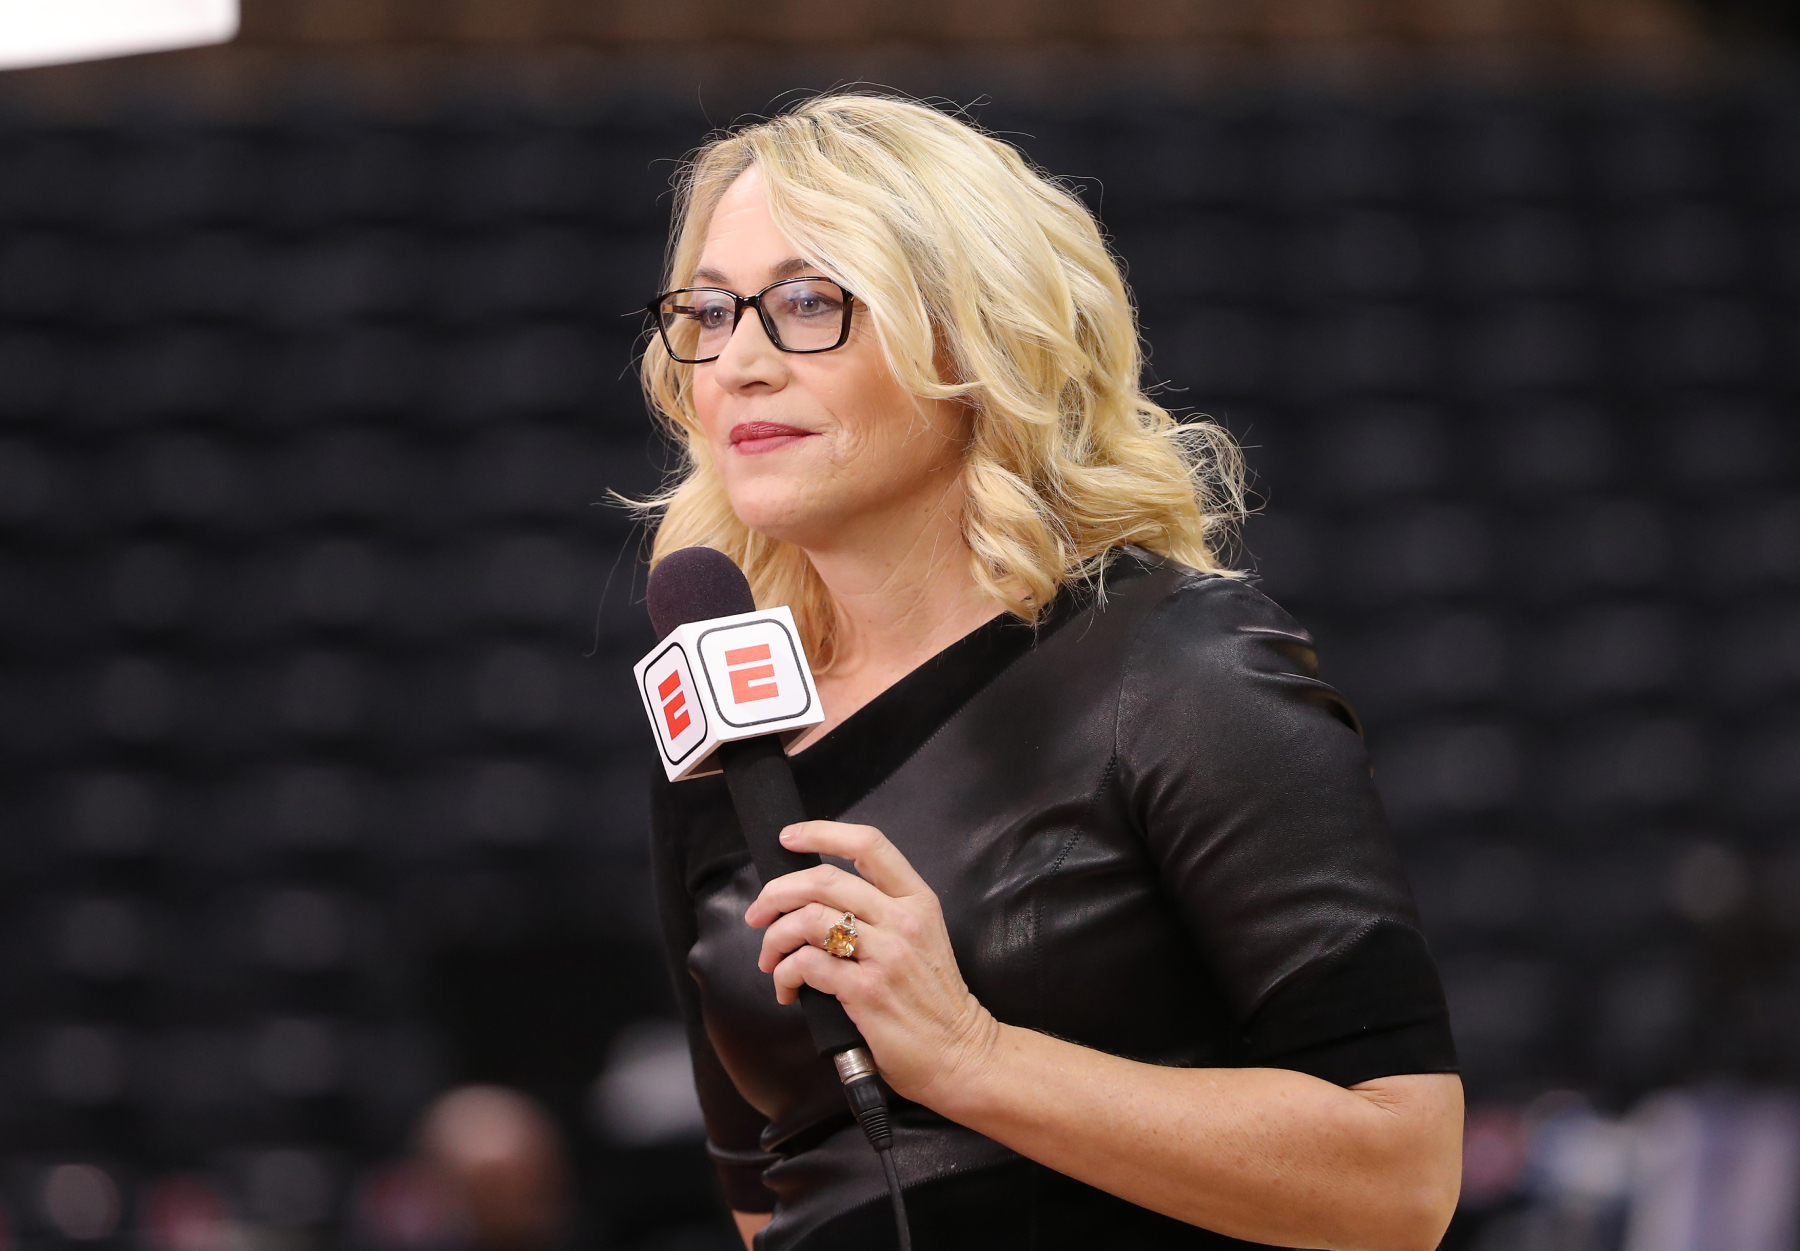 Doris Burke has had a legendary career at ESPN after having a successful basketball career. She recently clowned her ex-husband on TV.